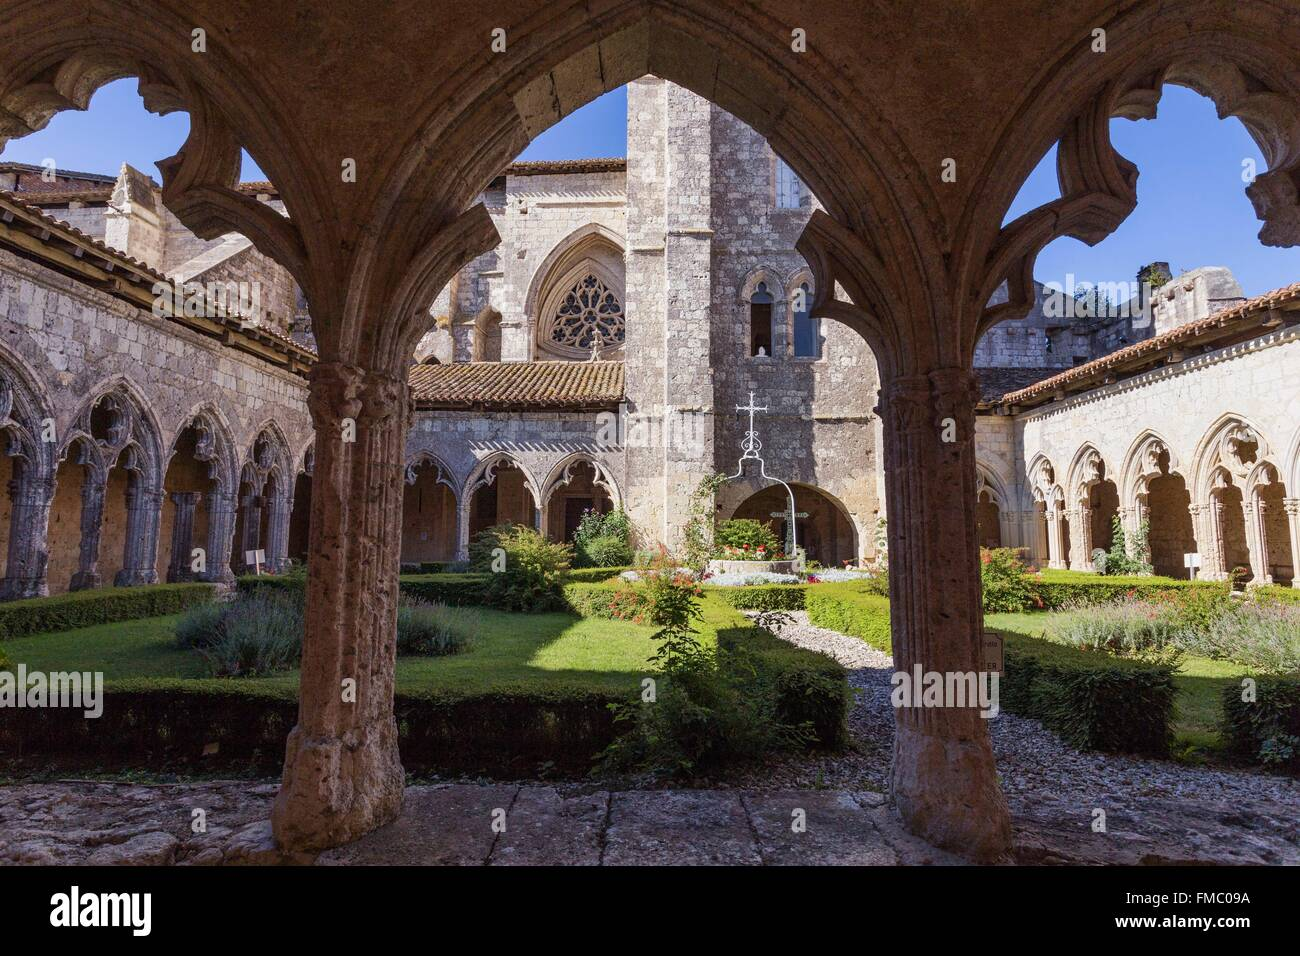 France, Gers, La Romieu, stop on the Way of St James, listed as World Heritage by UNESCO, the cloister of the collegiate - Stock Image